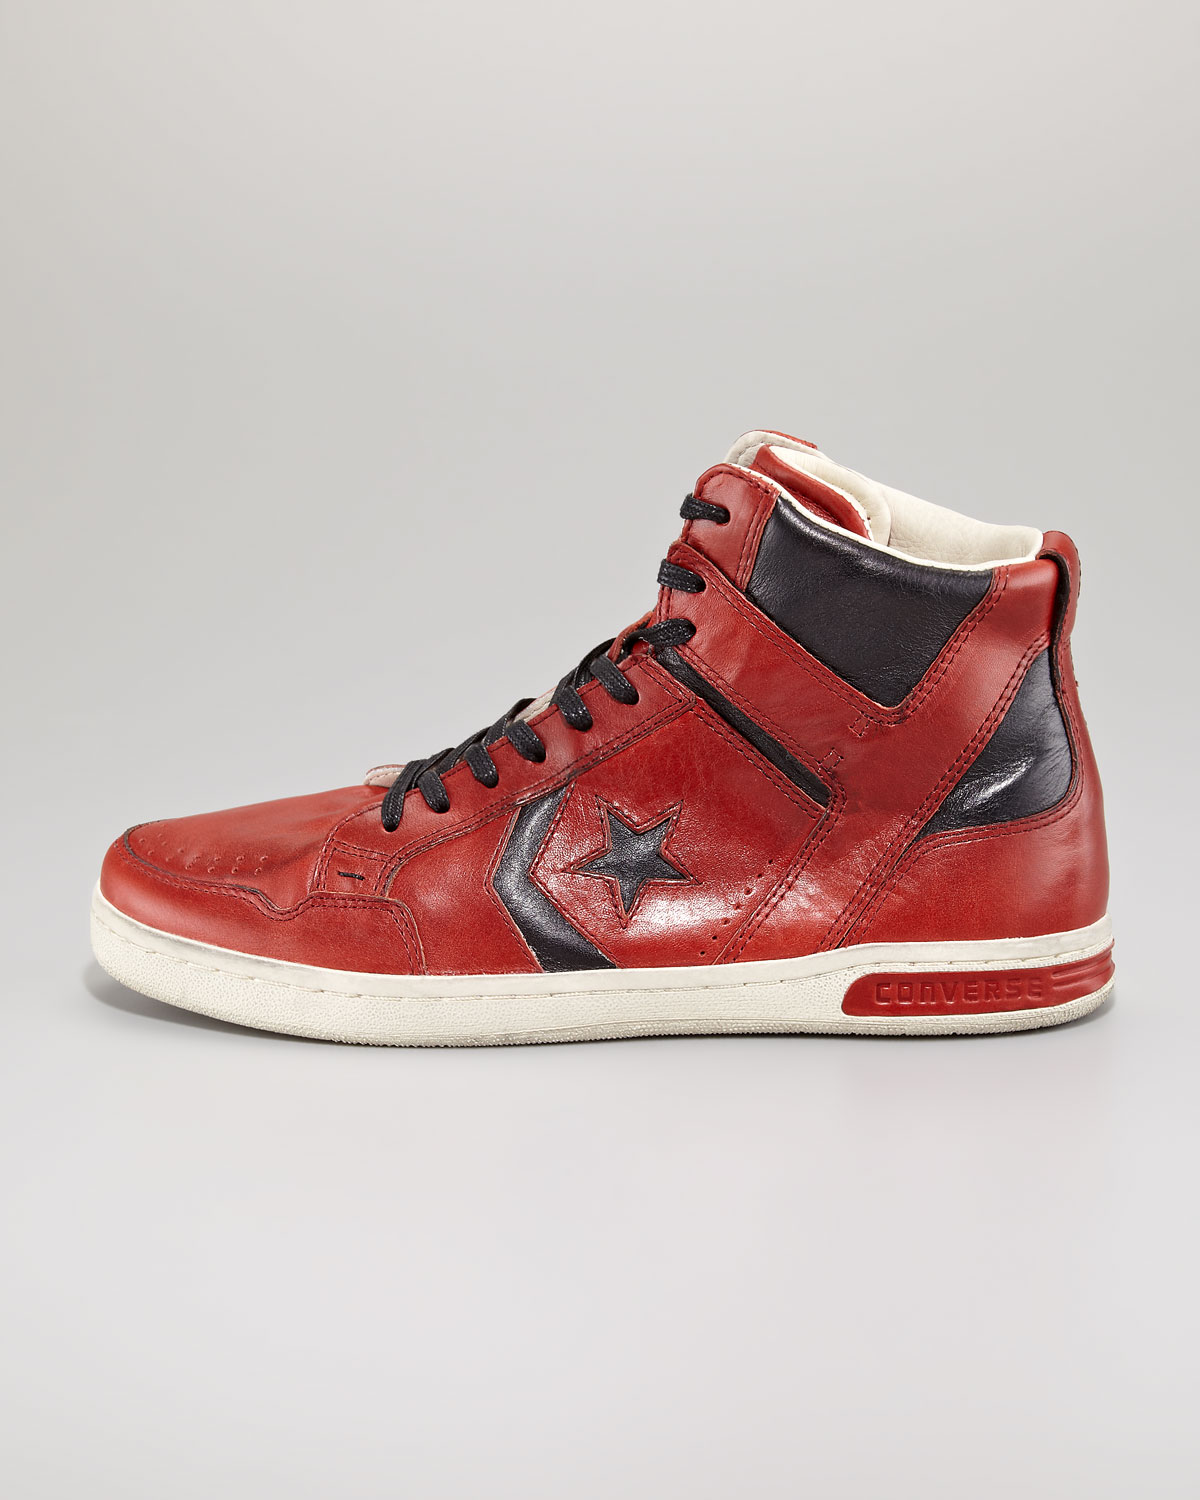 Converse Jv Weapon Leather Hitop In Red For Men Lyst